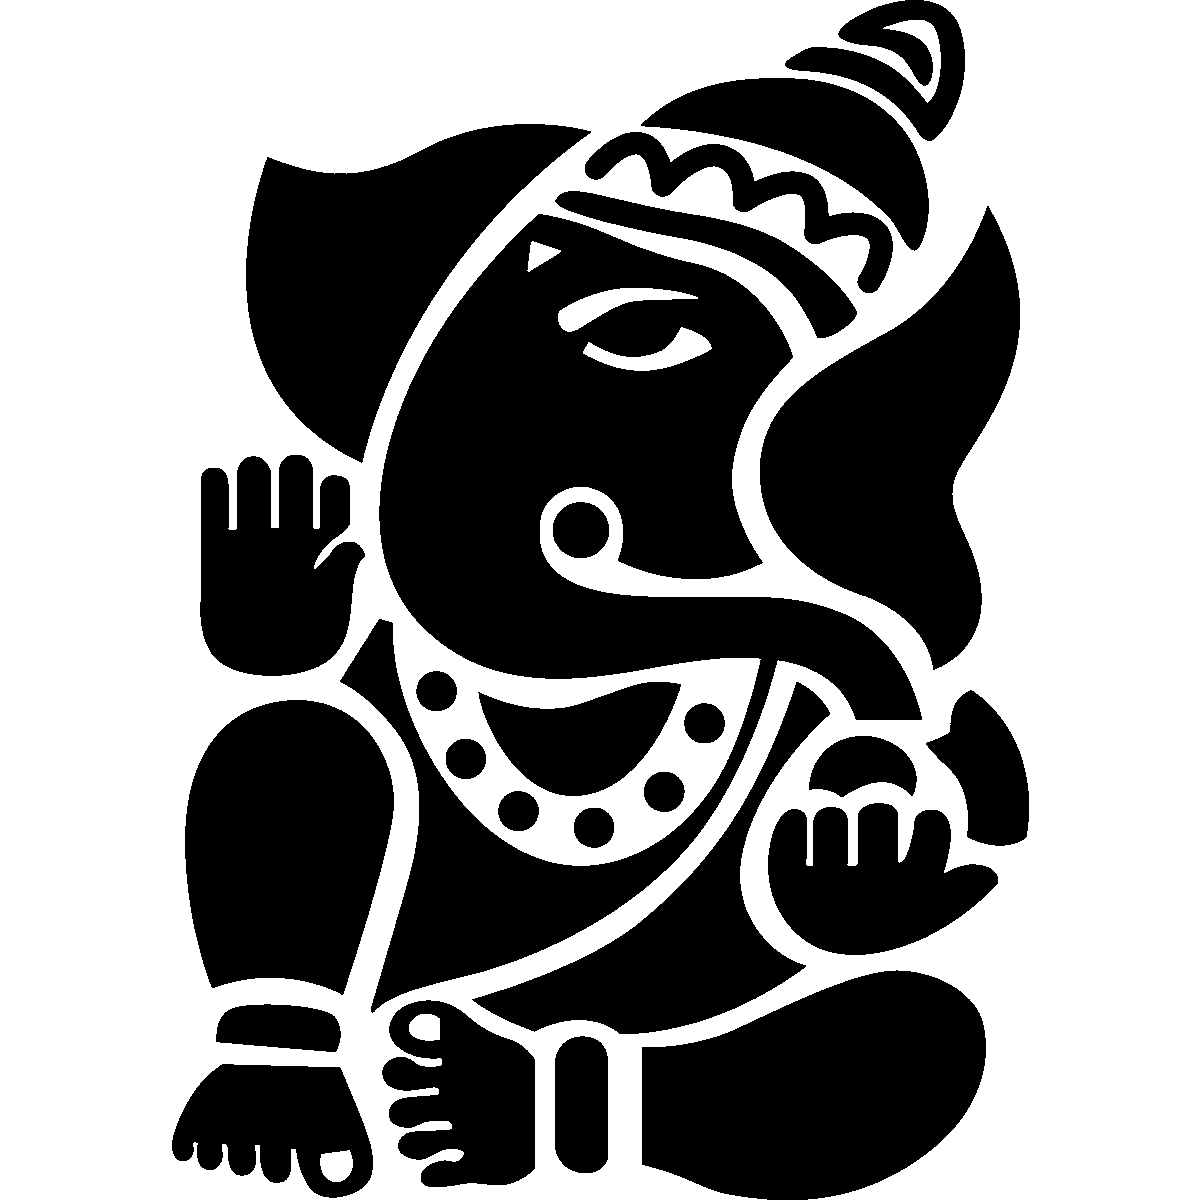 You Will Need Mason Jar Glow In The Dark Paint Cut out Of Ganesha